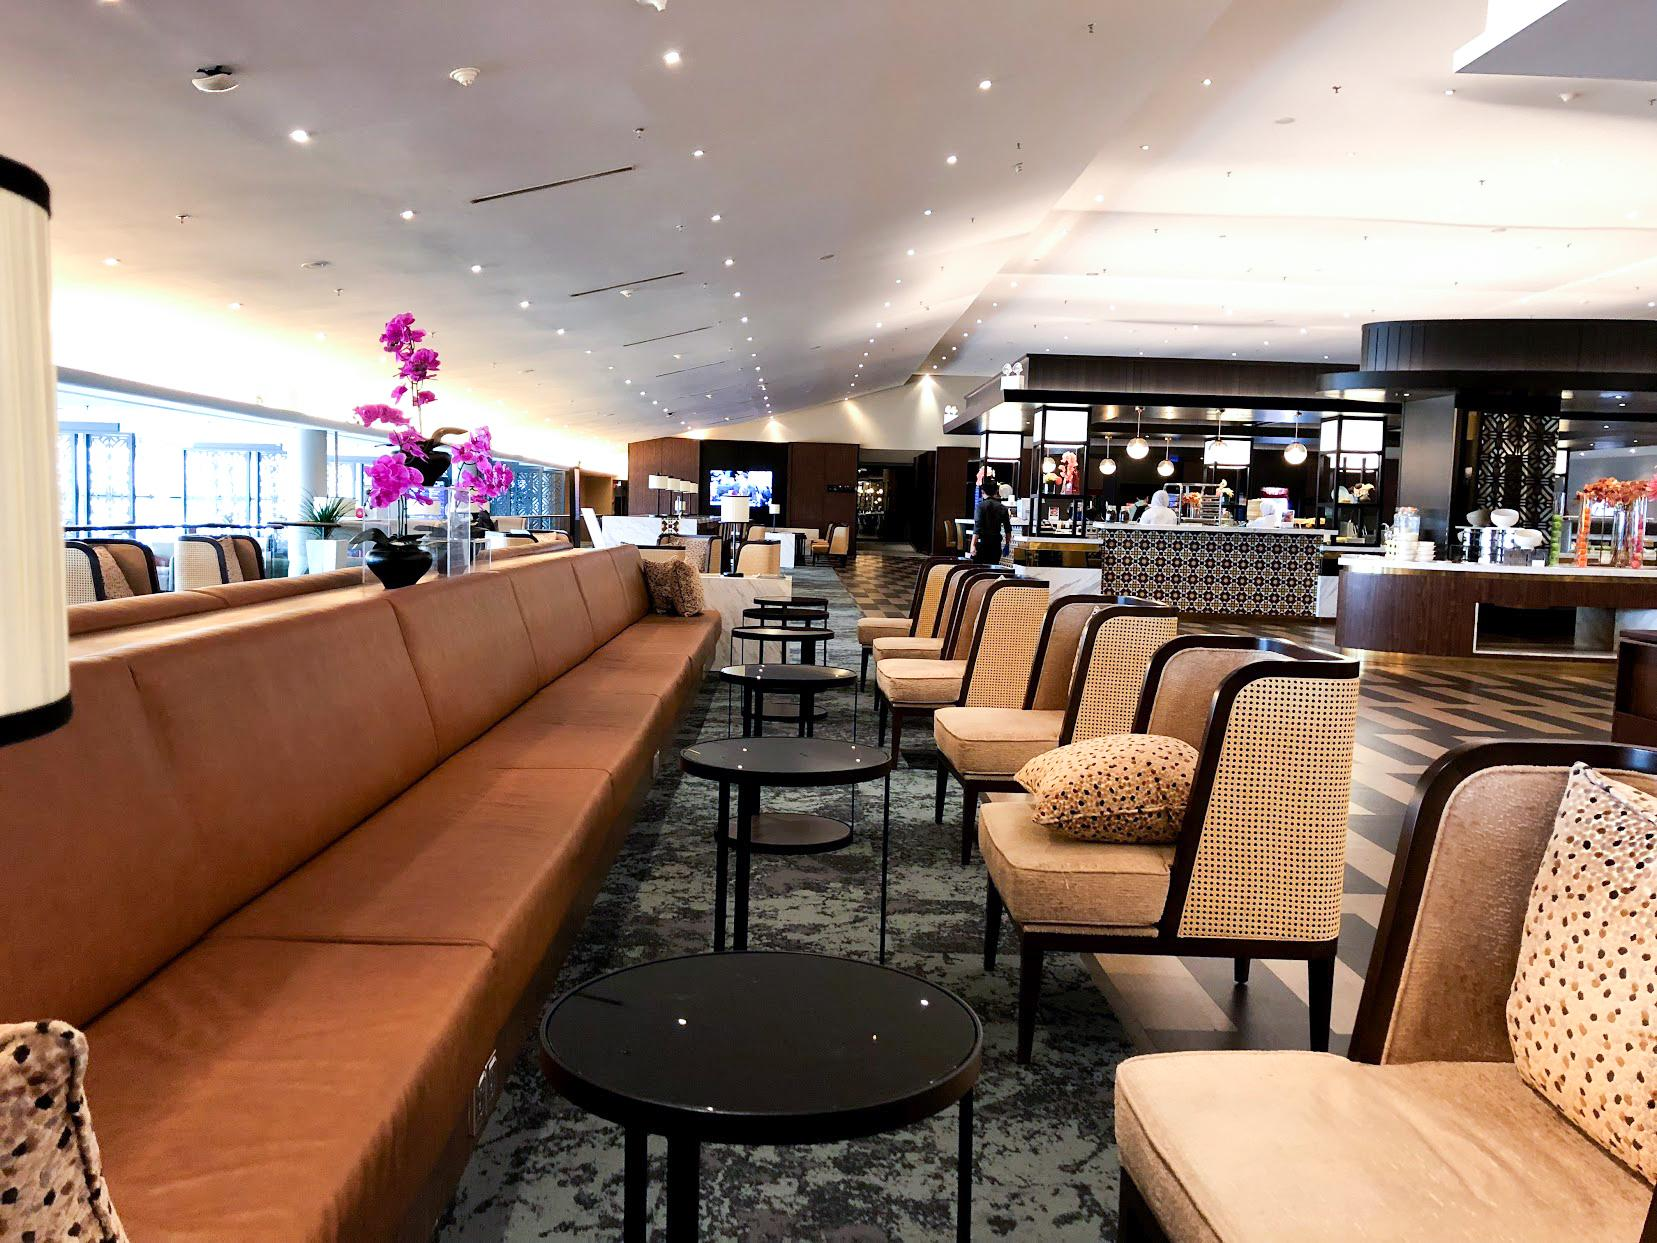 Malaysia Airlines Satellite Golden Lounge Kuala Lumpur seating area